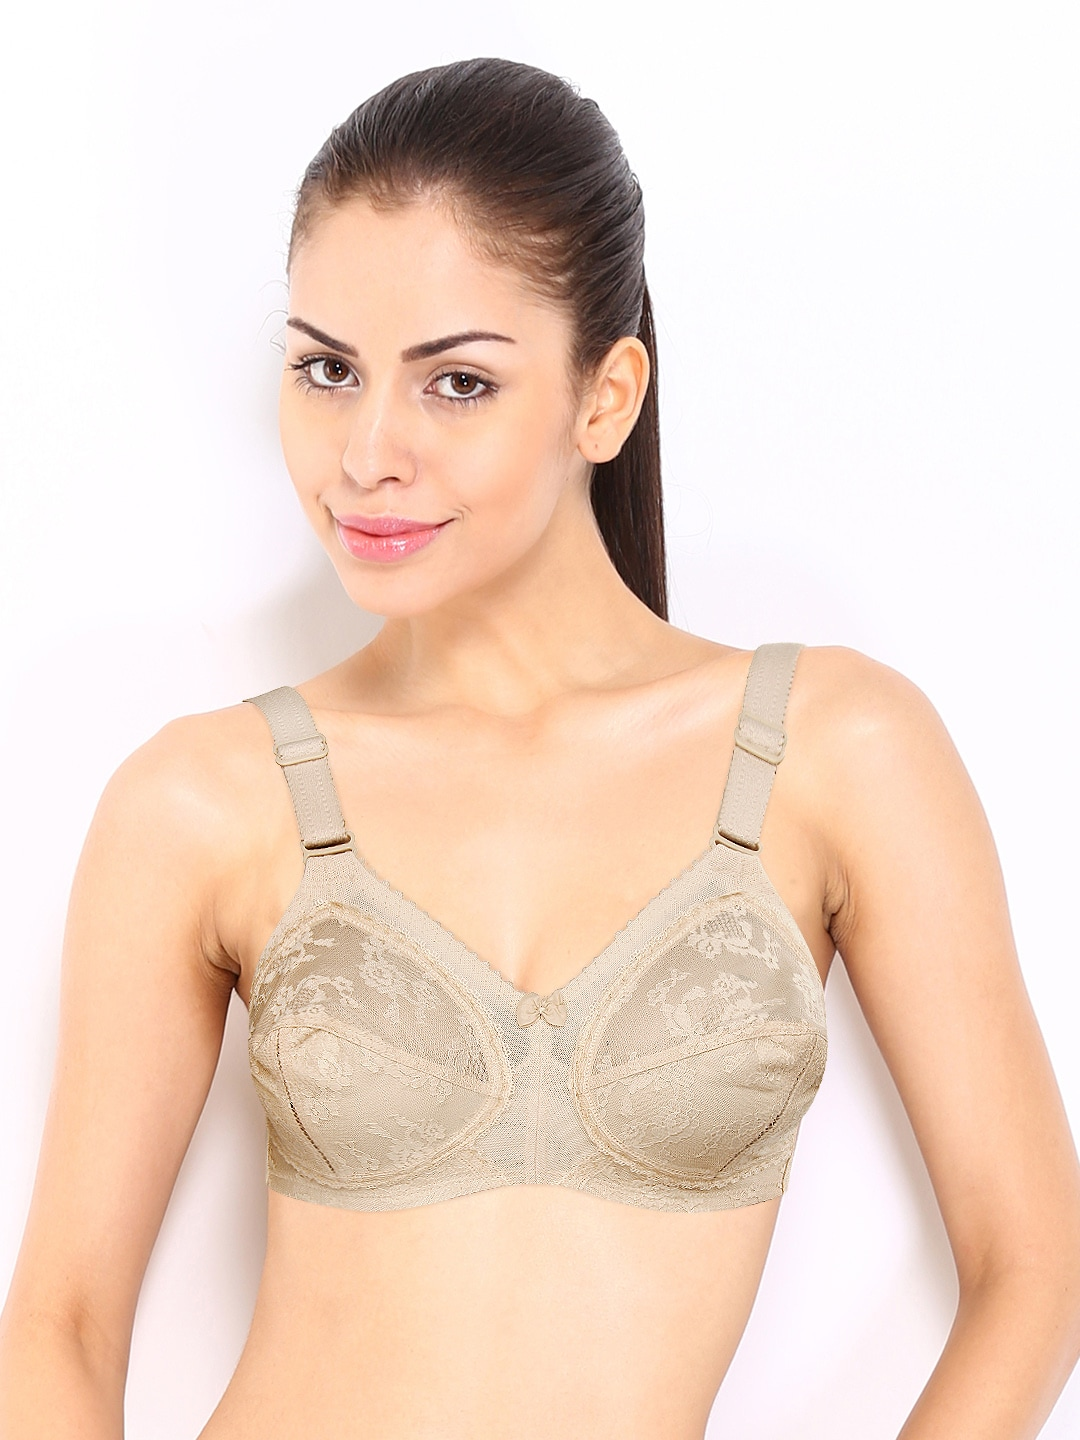 5f69ce4ec8 Triumph Nude-Coloured Full-Coverage Lace Bra 20-319